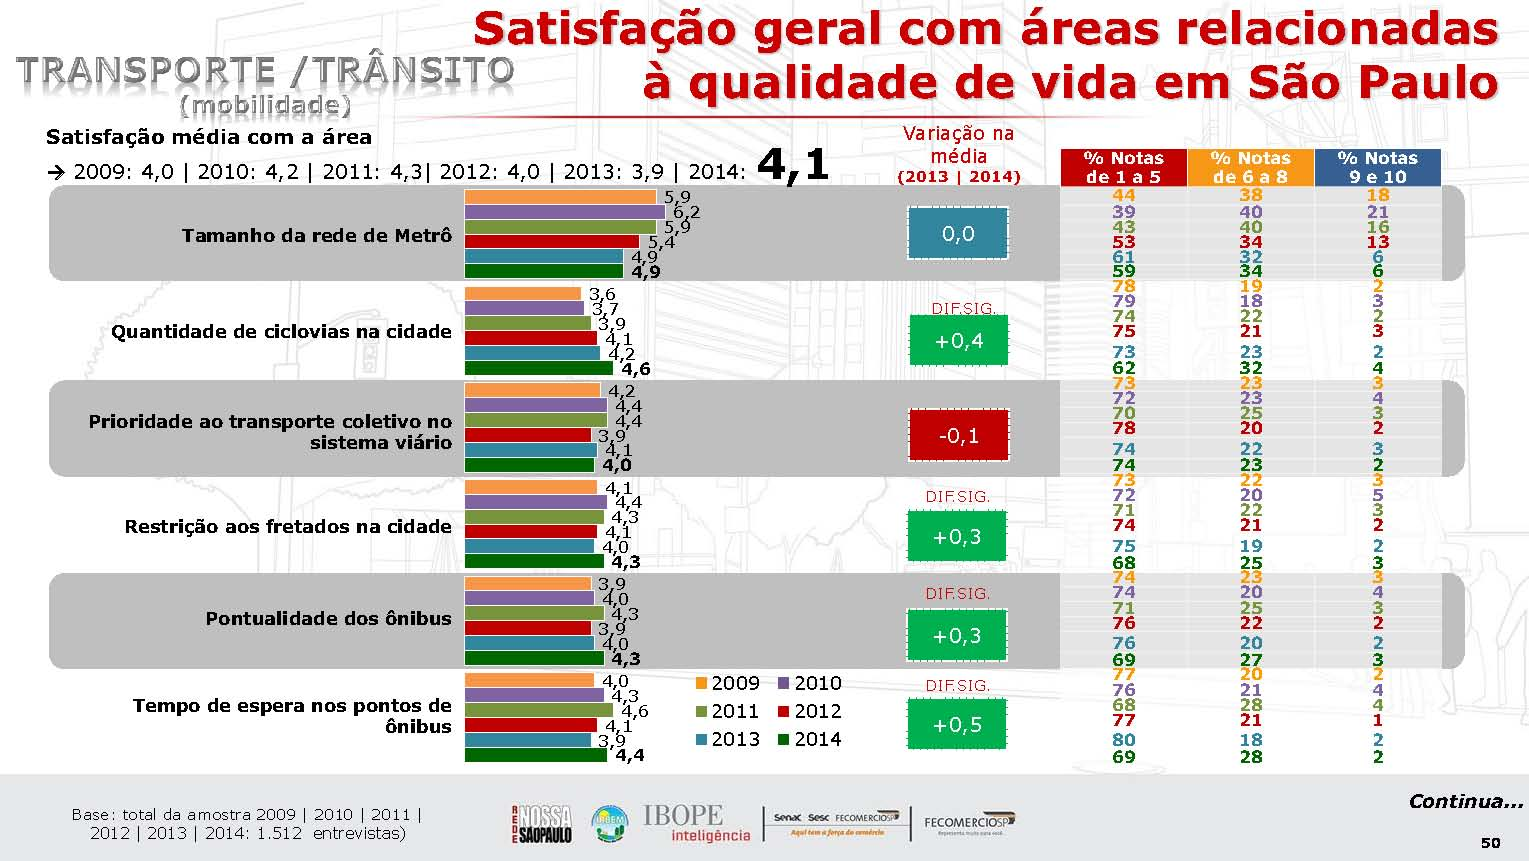 Increased or stable satisfaction with transport in São Paulo